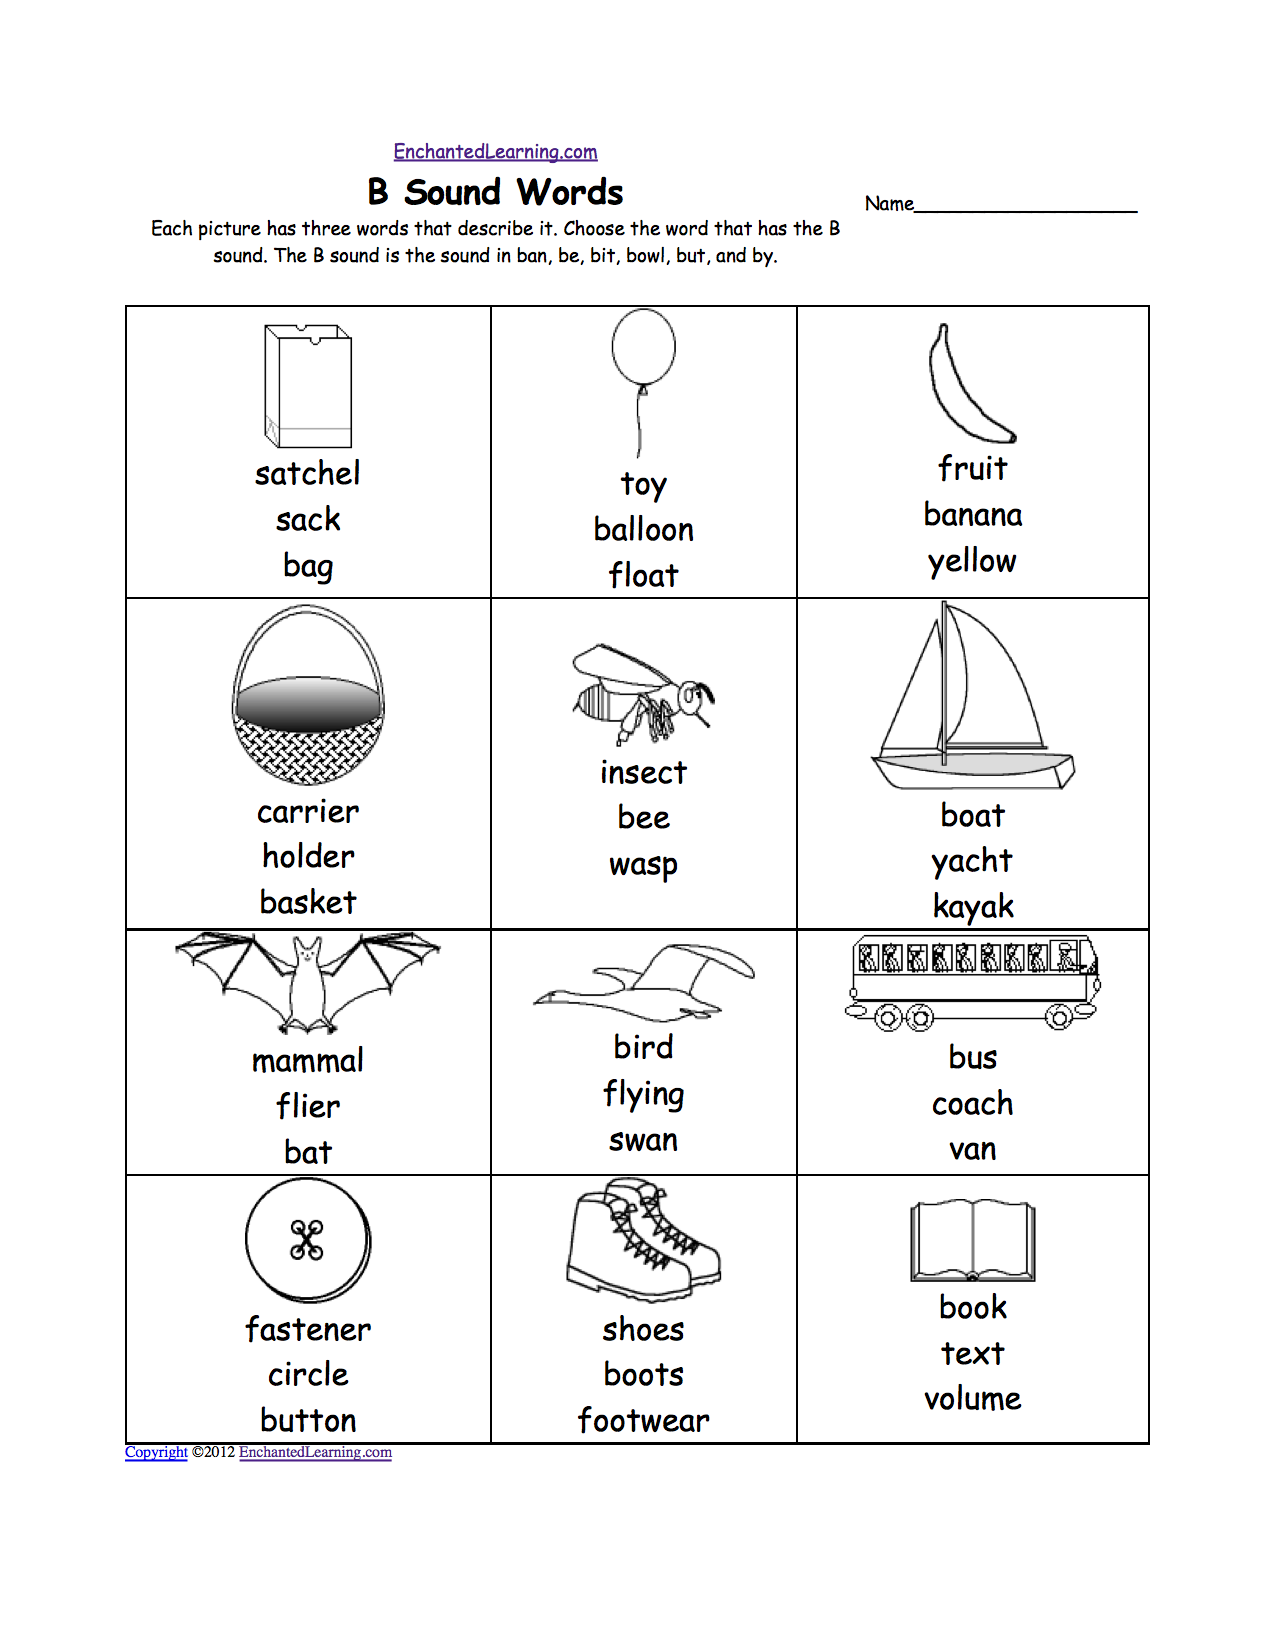 Weirdmailus  Fascinating Phonics Worksheets Multiple Choice Worksheets To Print  With Marvelous Quotbquot Sound Phonics Worksheet Multiple Choice Each Picture Has Three Words That Describe It Choose The Word That Has A Quotbquot Sound The Quotbquot Sound Is The Sound  With Lovely Hard Maze Worksheets Also French Er Verbs Worksheet In Addition Sixth Grade Math Worksheets Pdf And Allegory Worksheets As Well As Preposition Of Place Worksheet Additionally Synonym Worksheets For Th Grade From Enchantedlearningcom With Weirdmailus  Marvelous Phonics Worksheets Multiple Choice Worksheets To Print  With Lovely Quotbquot Sound Phonics Worksheet Multiple Choice Each Picture Has Three Words That Describe It Choose The Word That Has A Quotbquot Sound The Quotbquot Sound Is The Sound  And Fascinating Hard Maze Worksheets Also French Er Verbs Worksheet In Addition Sixth Grade Math Worksheets Pdf From Enchantedlearningcom